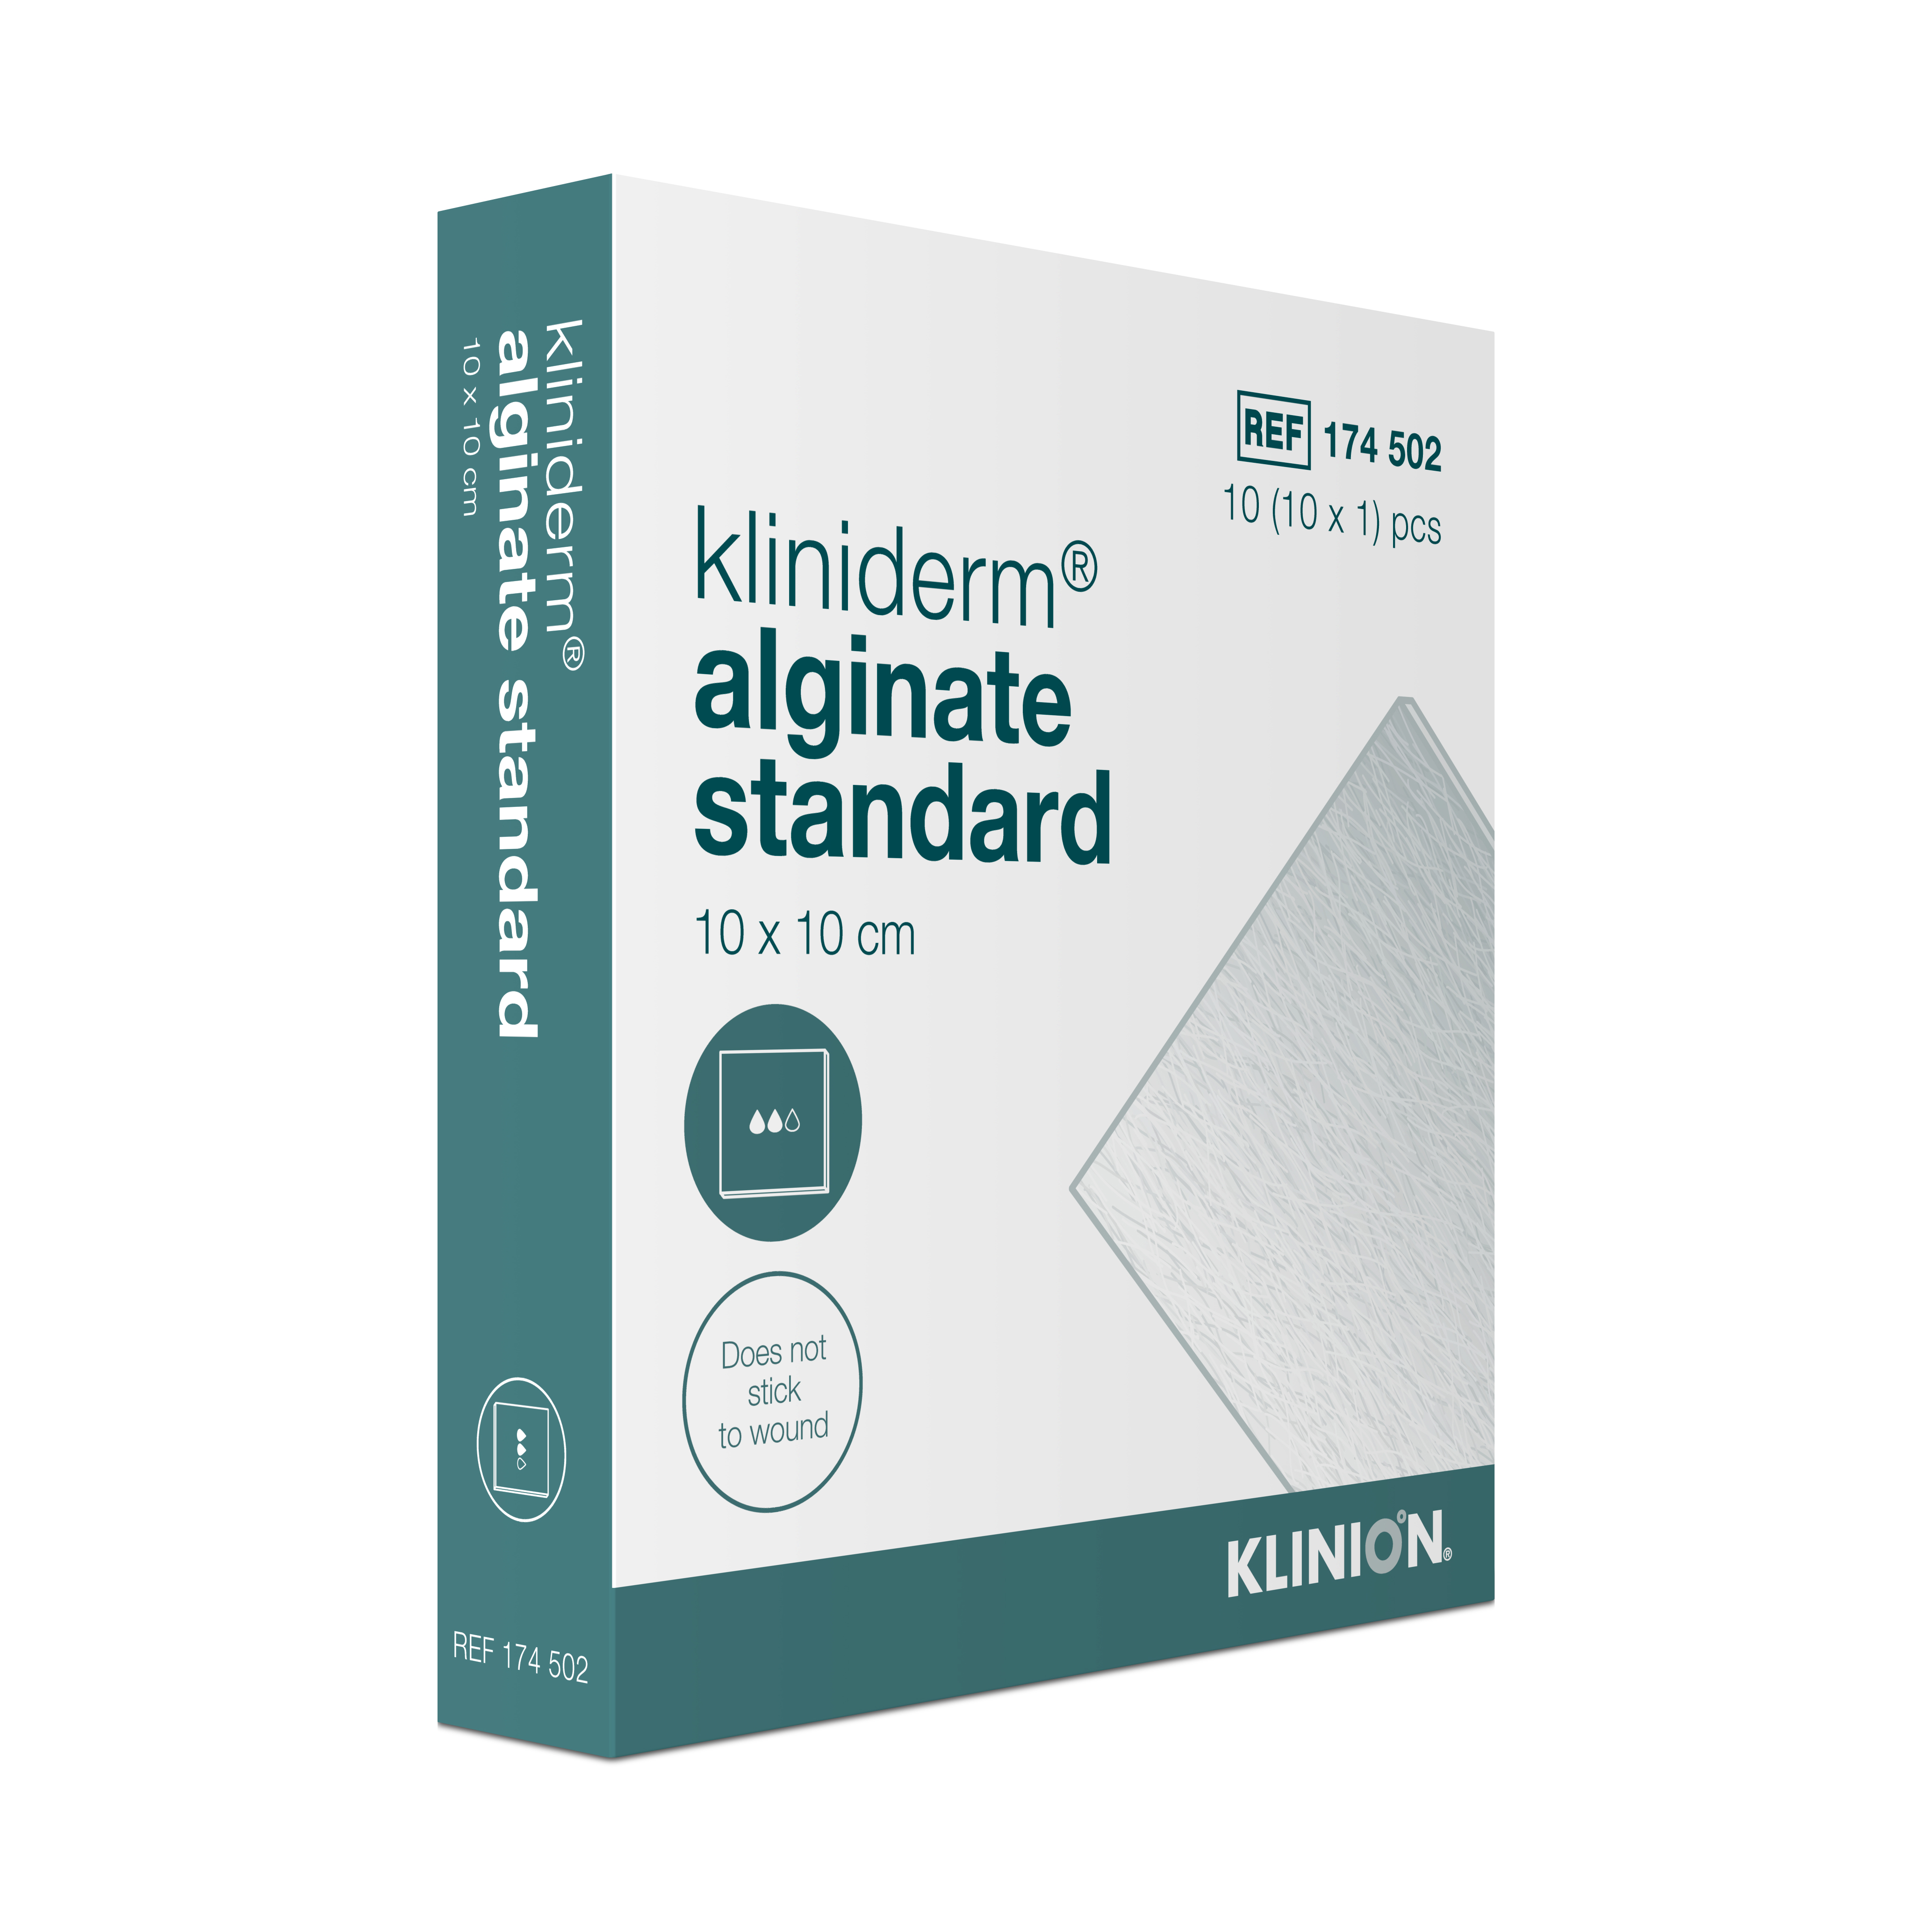 Kliniderm Alginate